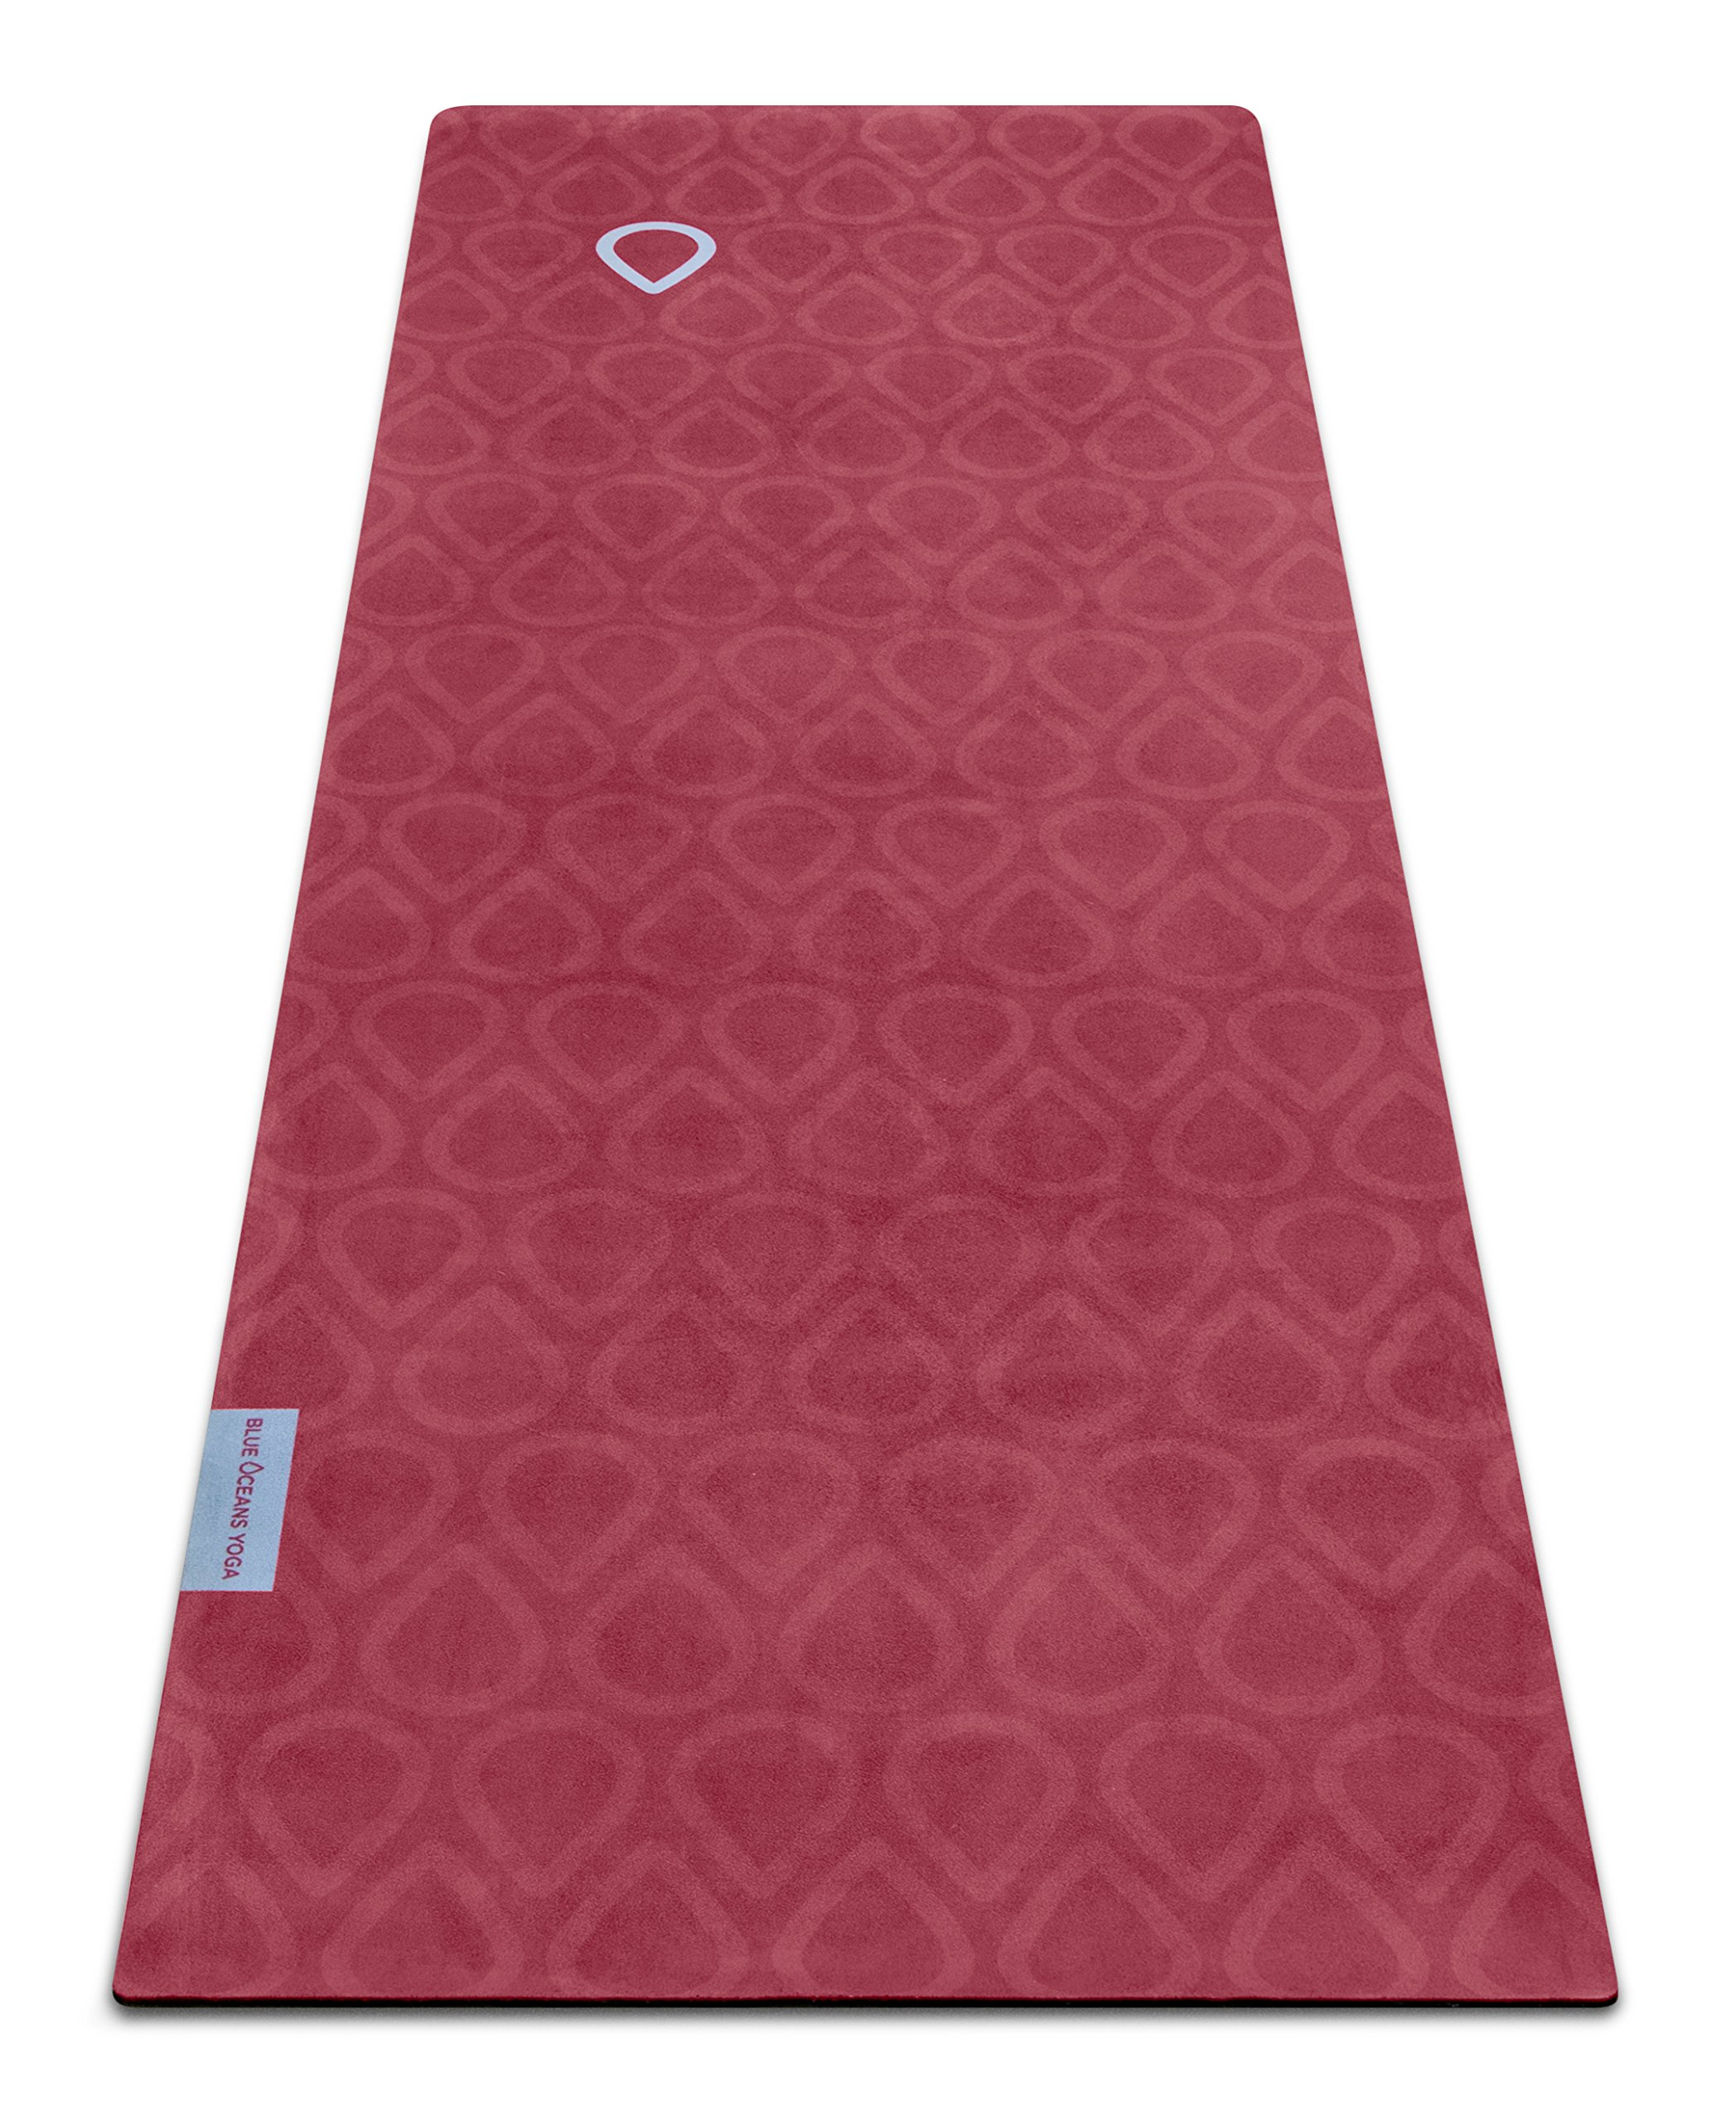 Blue Oceans Yoga Bikram Yoga Mat And Towel Combo 4 5mm